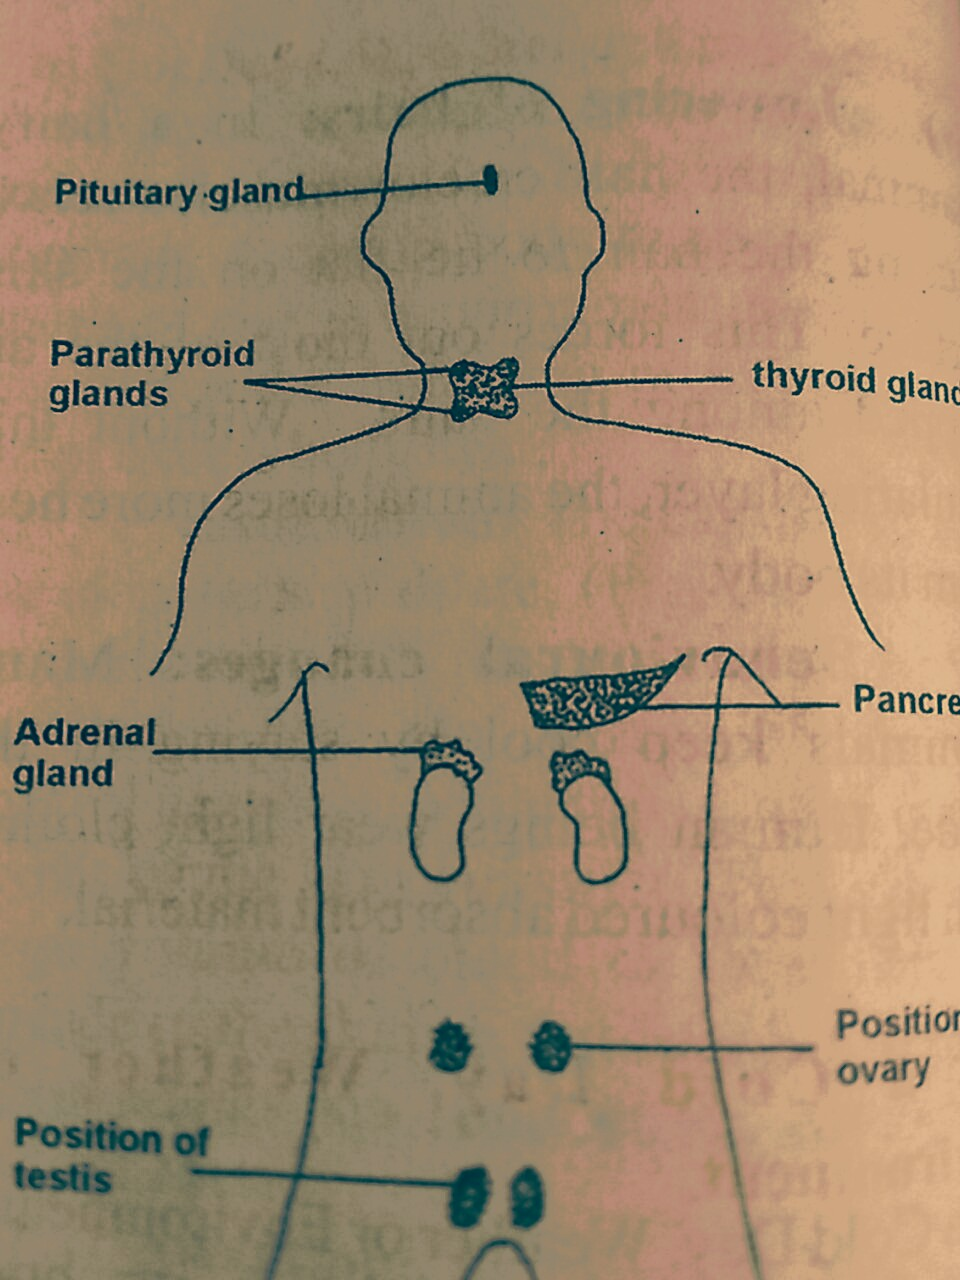 pancreatic gland position